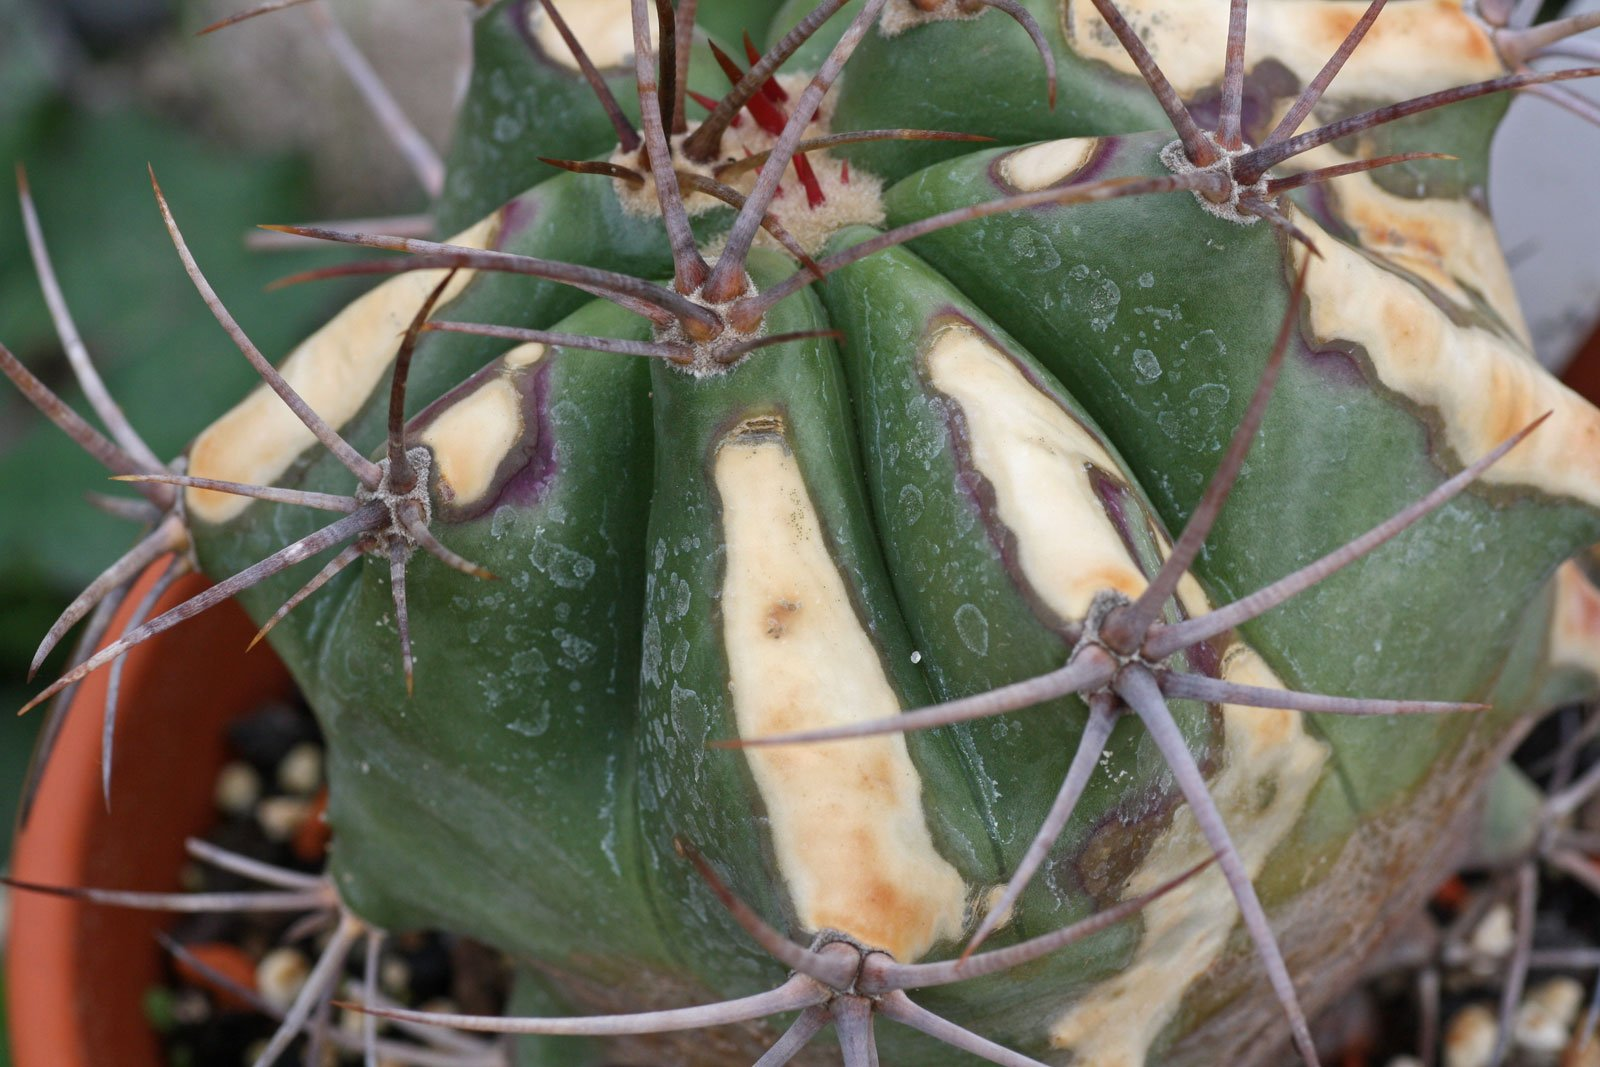 Barrel Cactus sunburn